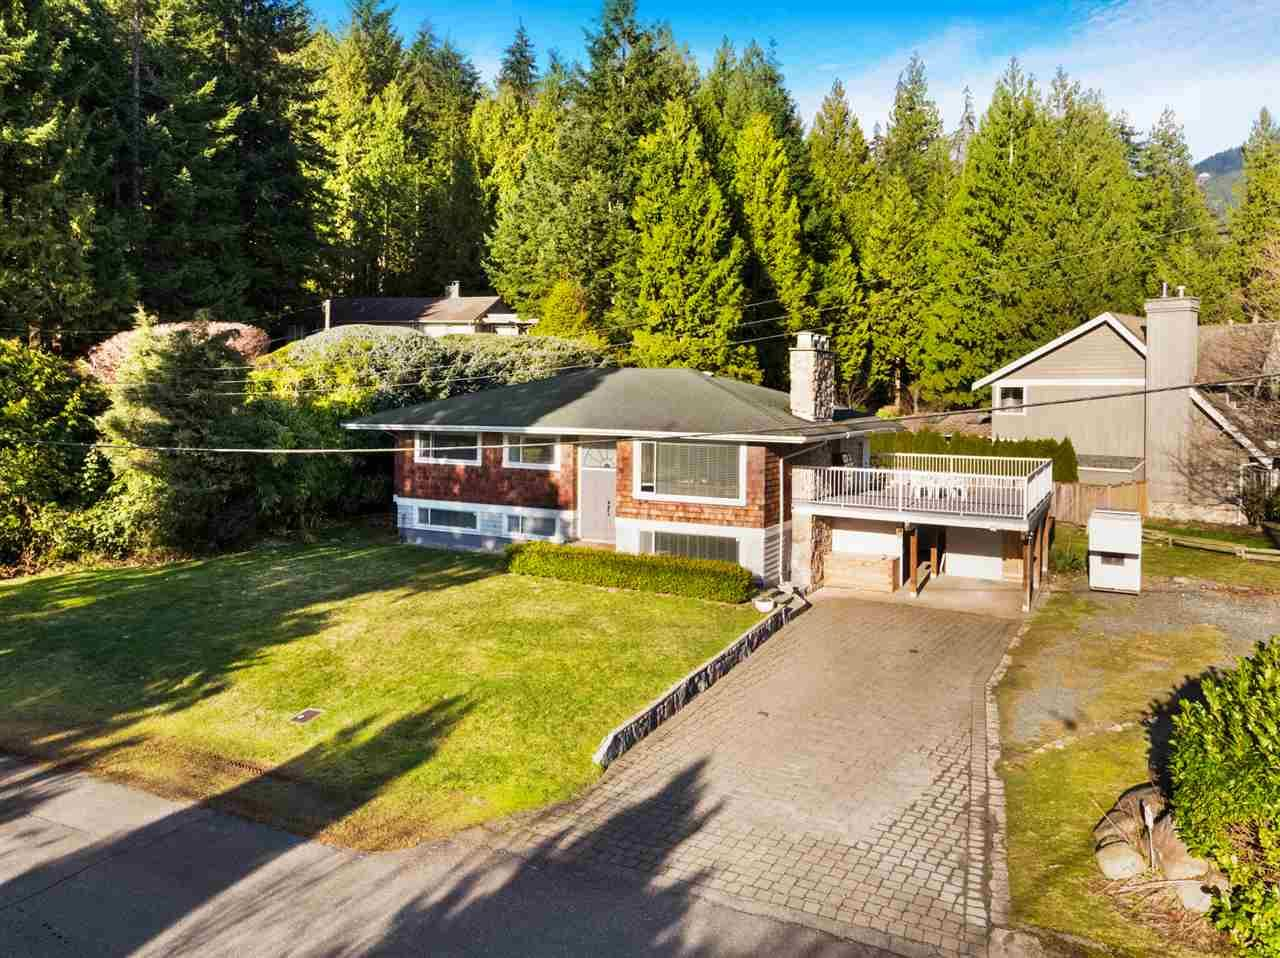 Photo of 73 DESSWOOD PLACE, West Vancouver, BC V7S 1B8 (MLS # R2591106)